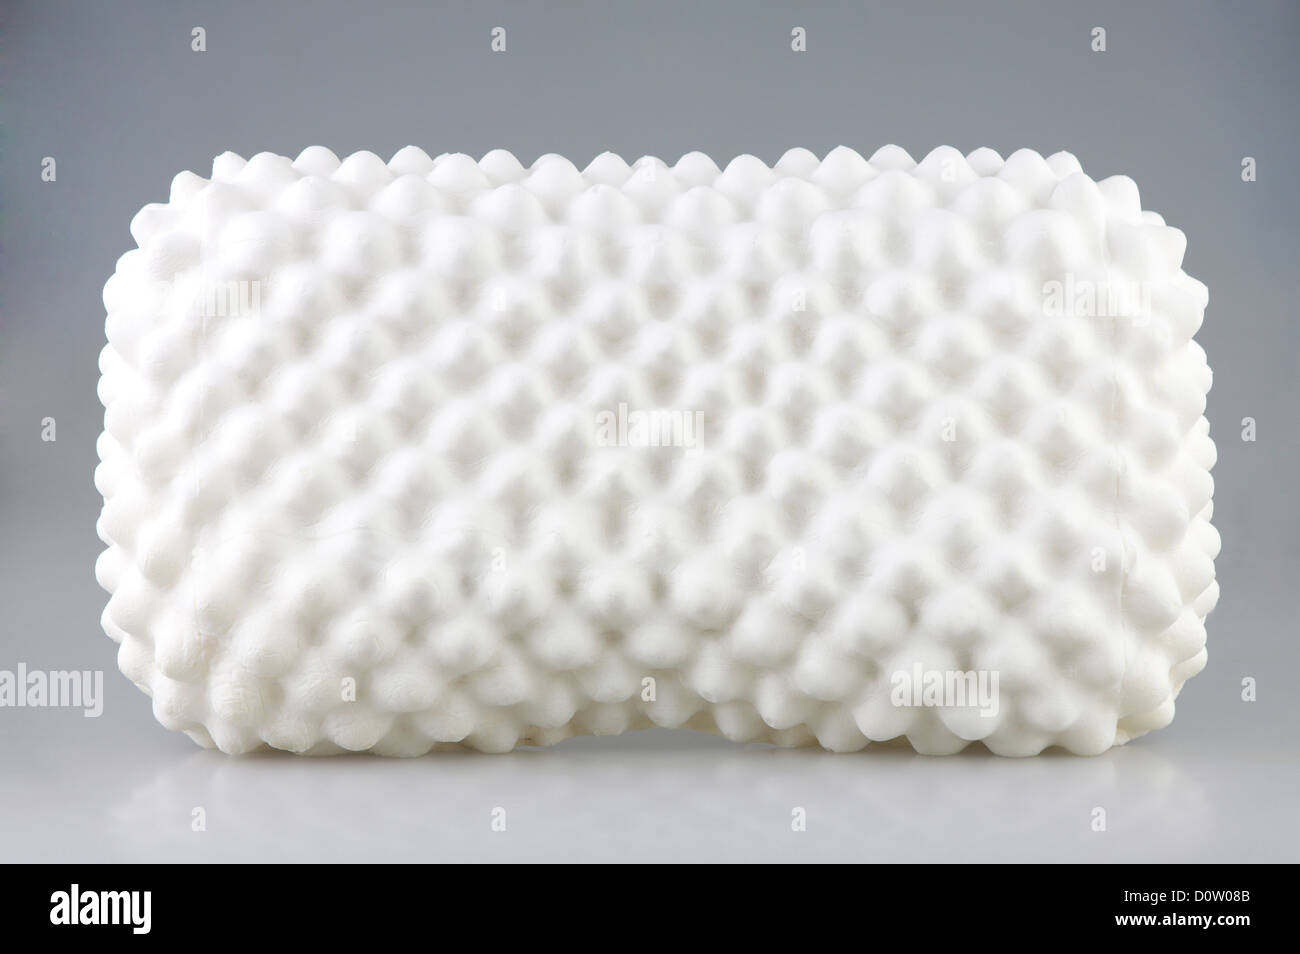 latex material inside the hygienic pillow to protects mite dust and support your neck - Stock Image